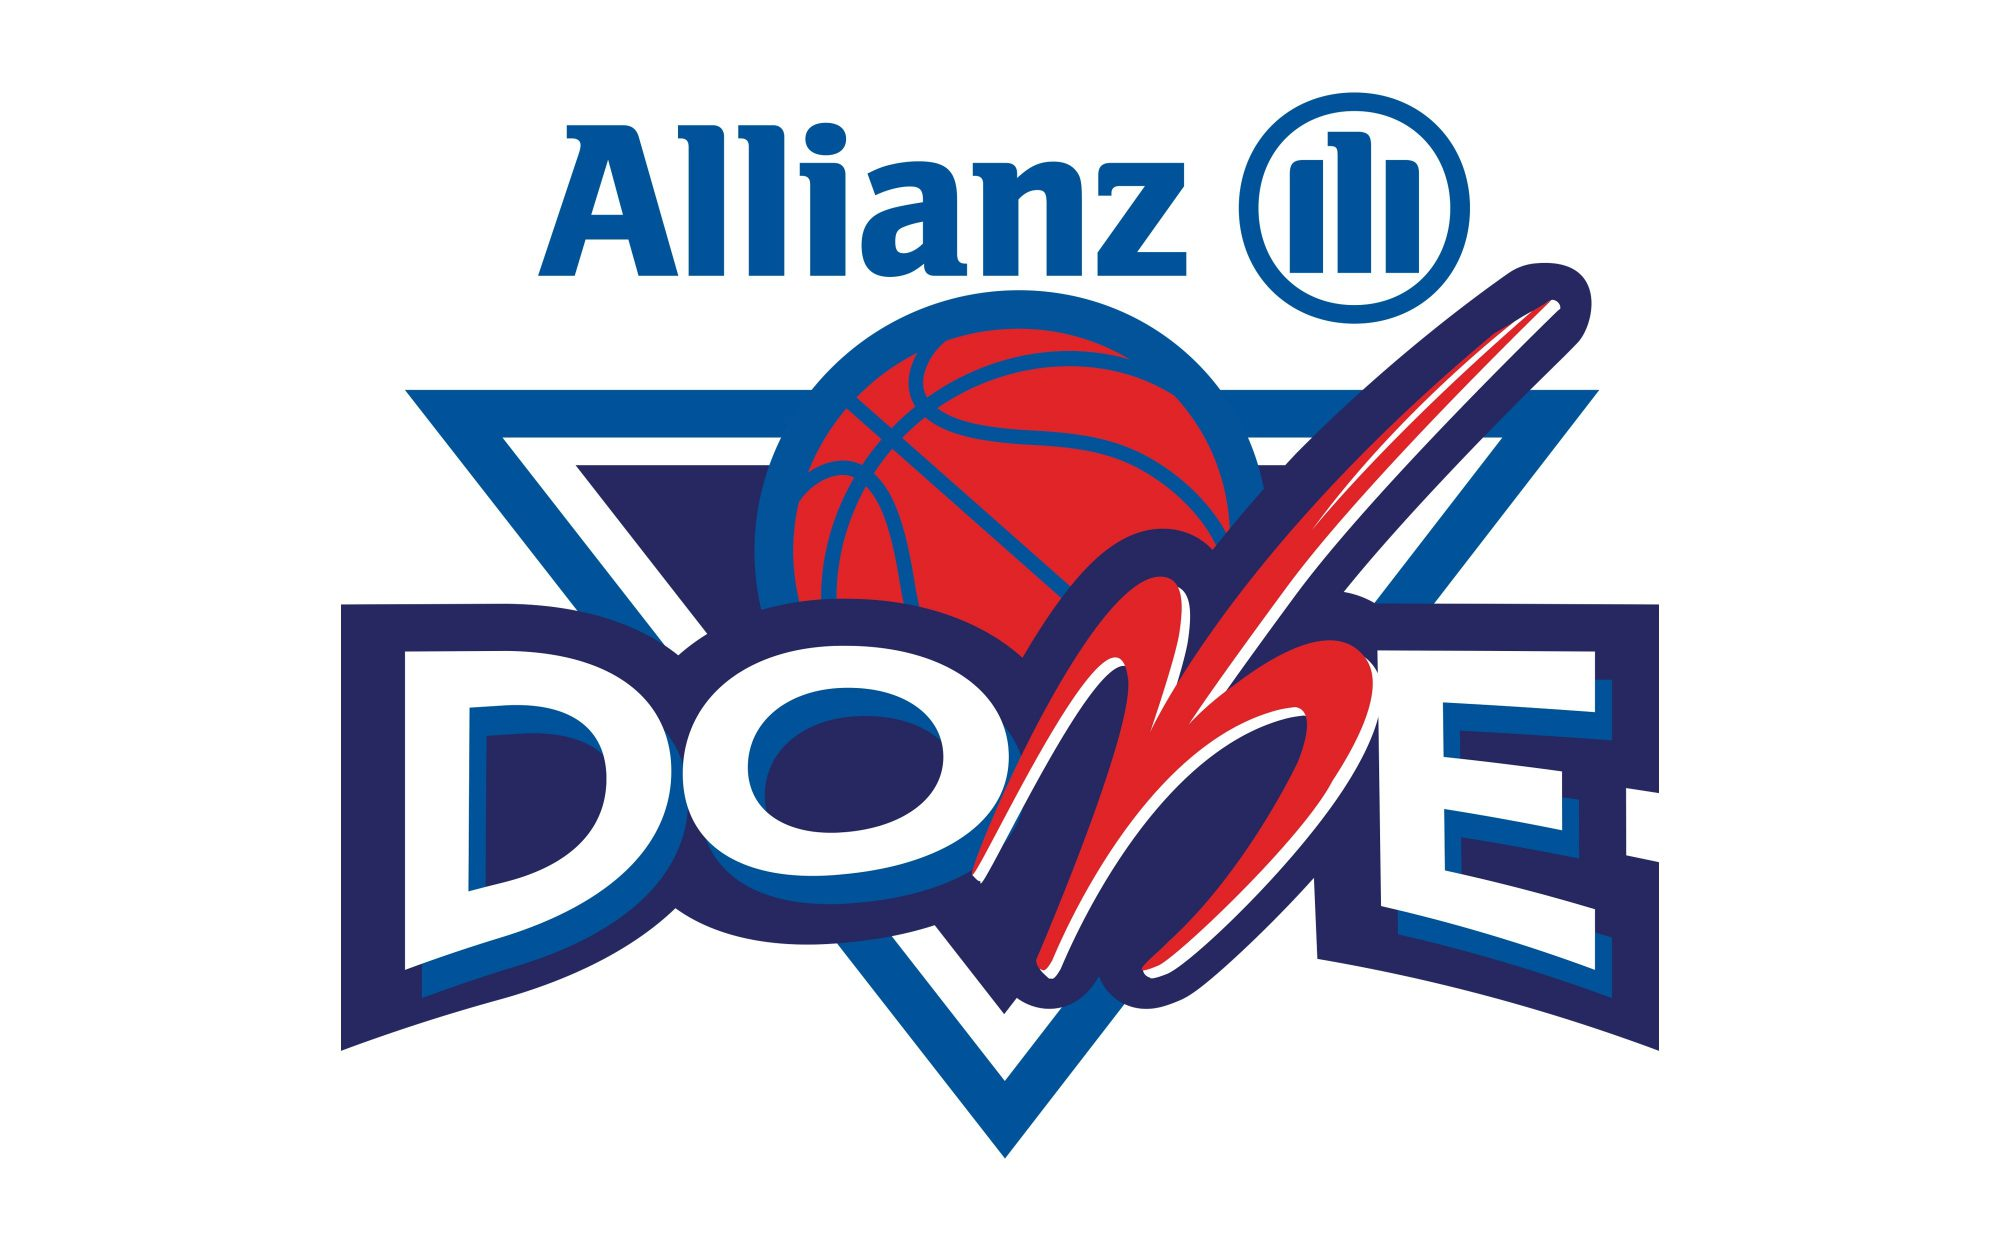 Allianz Dome - Logo parquet